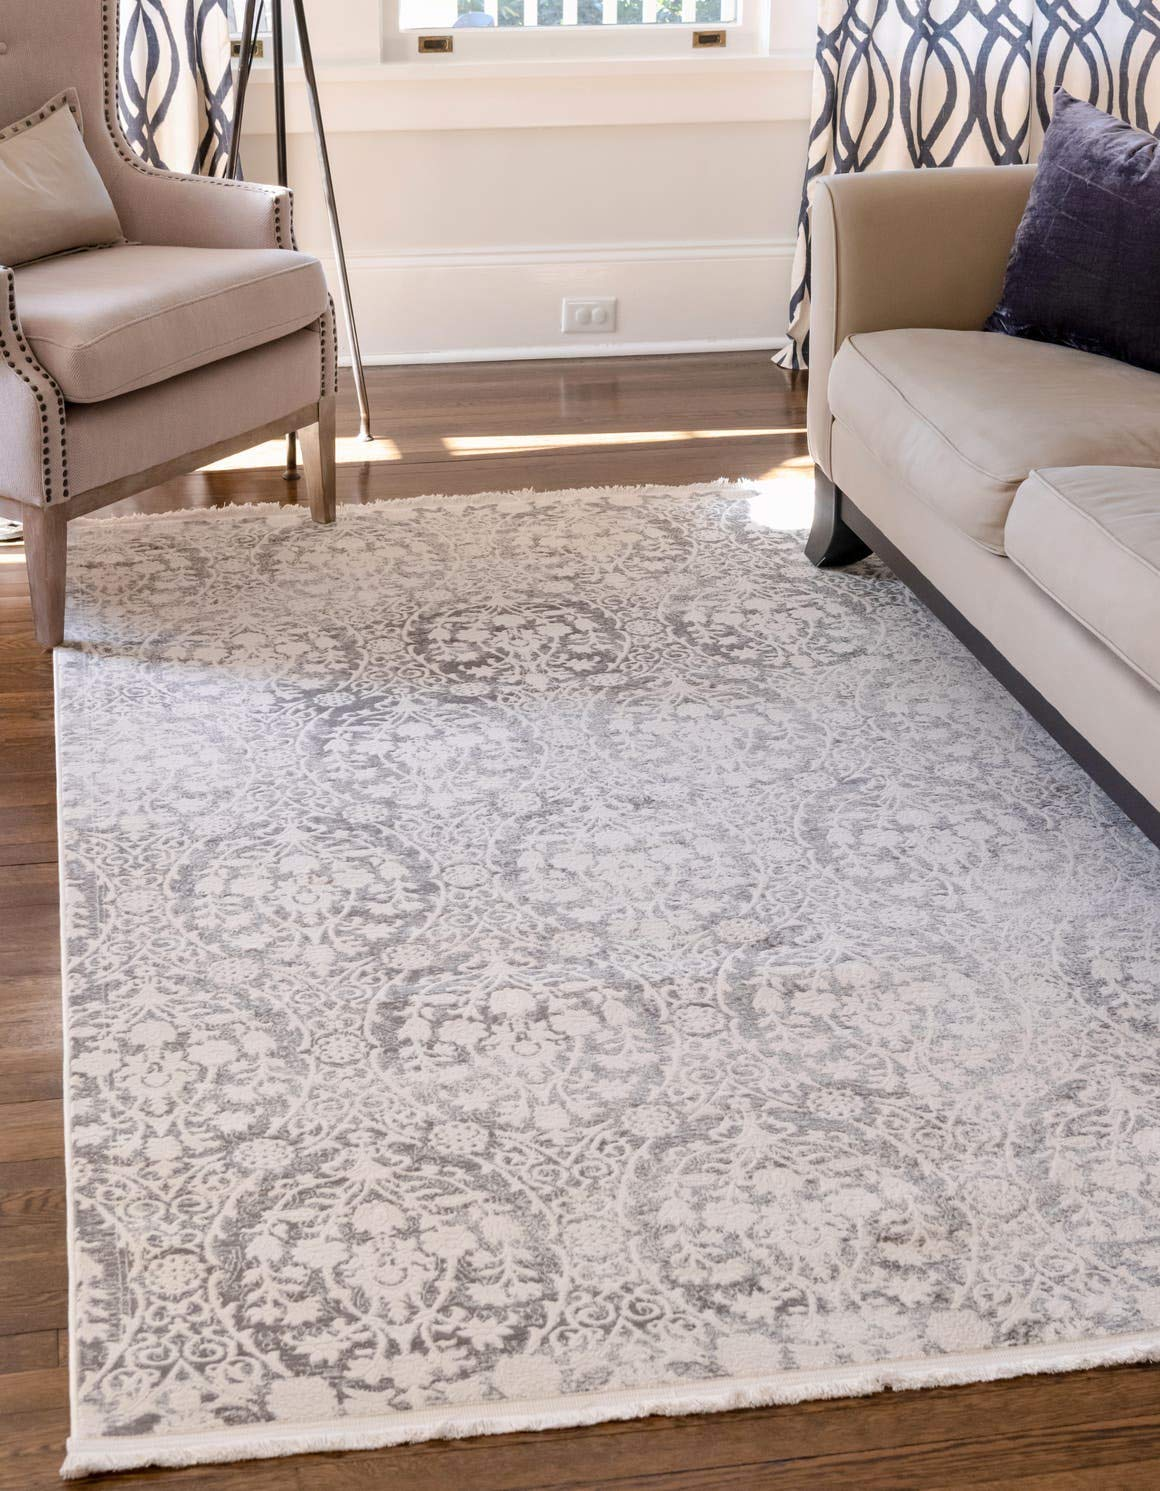 Unique Loom New Classical Collection Traditional Distressed Vintage Classic Light Gray Area Rug 3 3 x 5 3